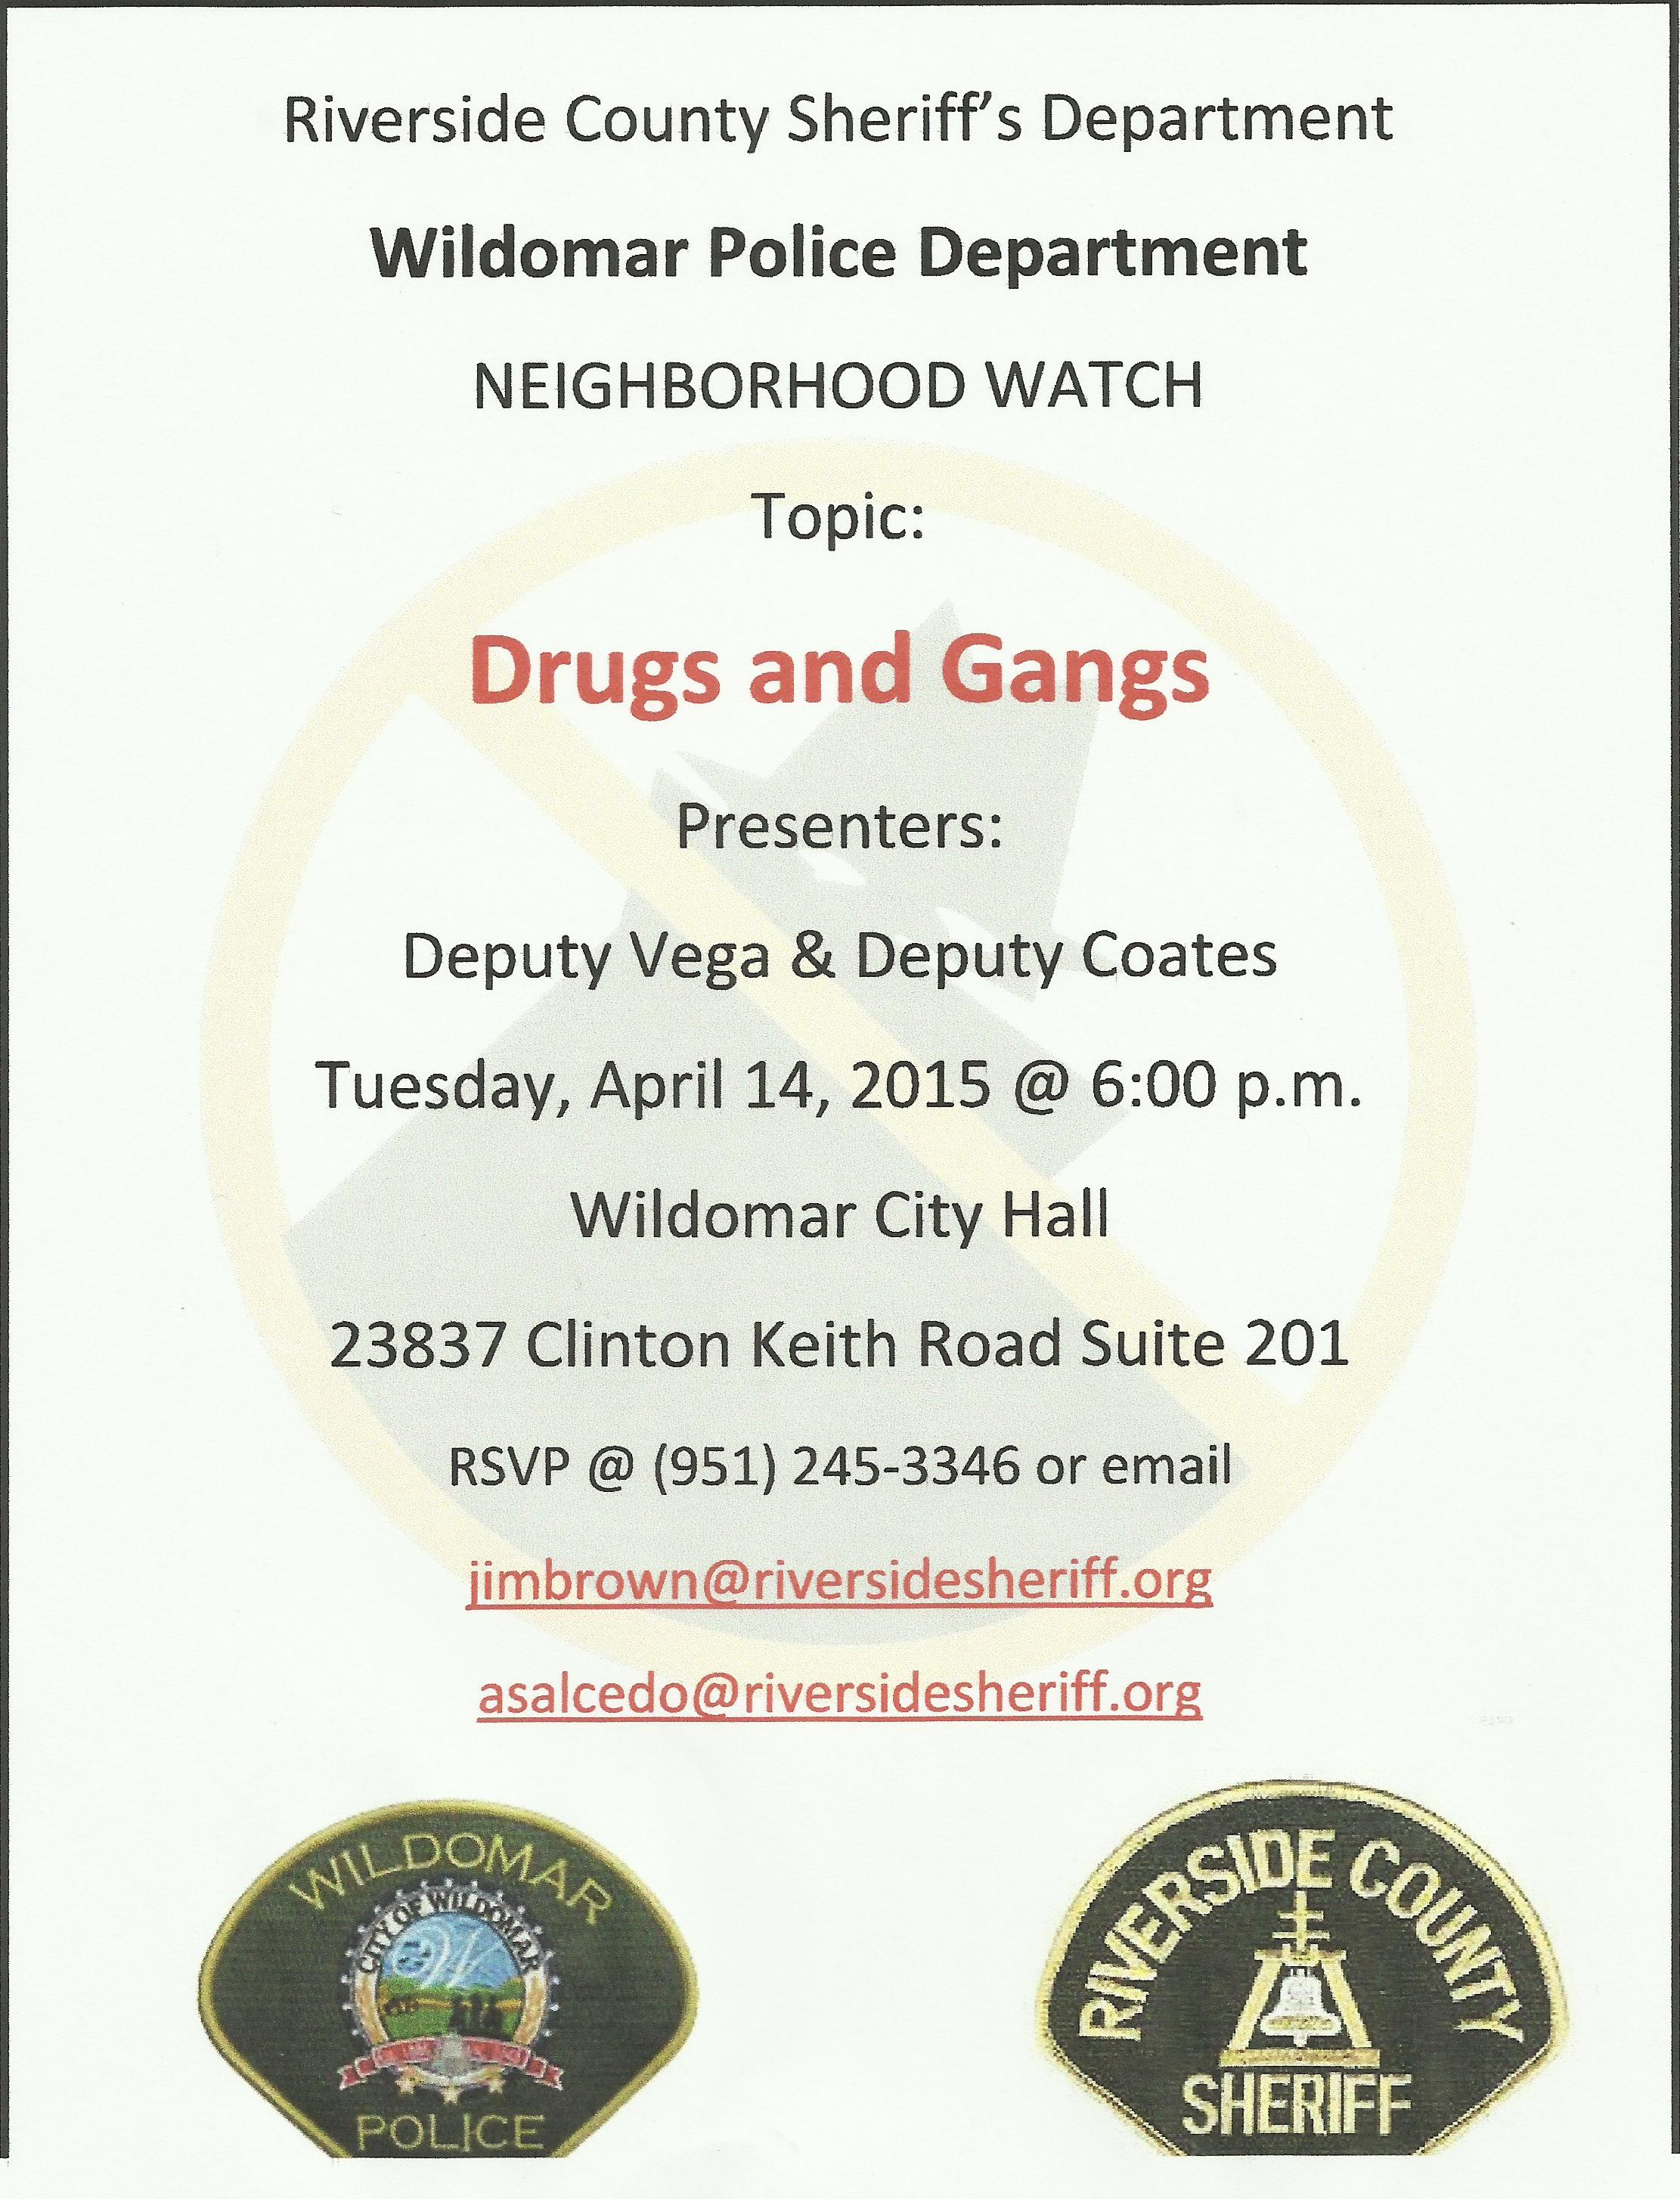 Neighborhood Watch 4-14-15